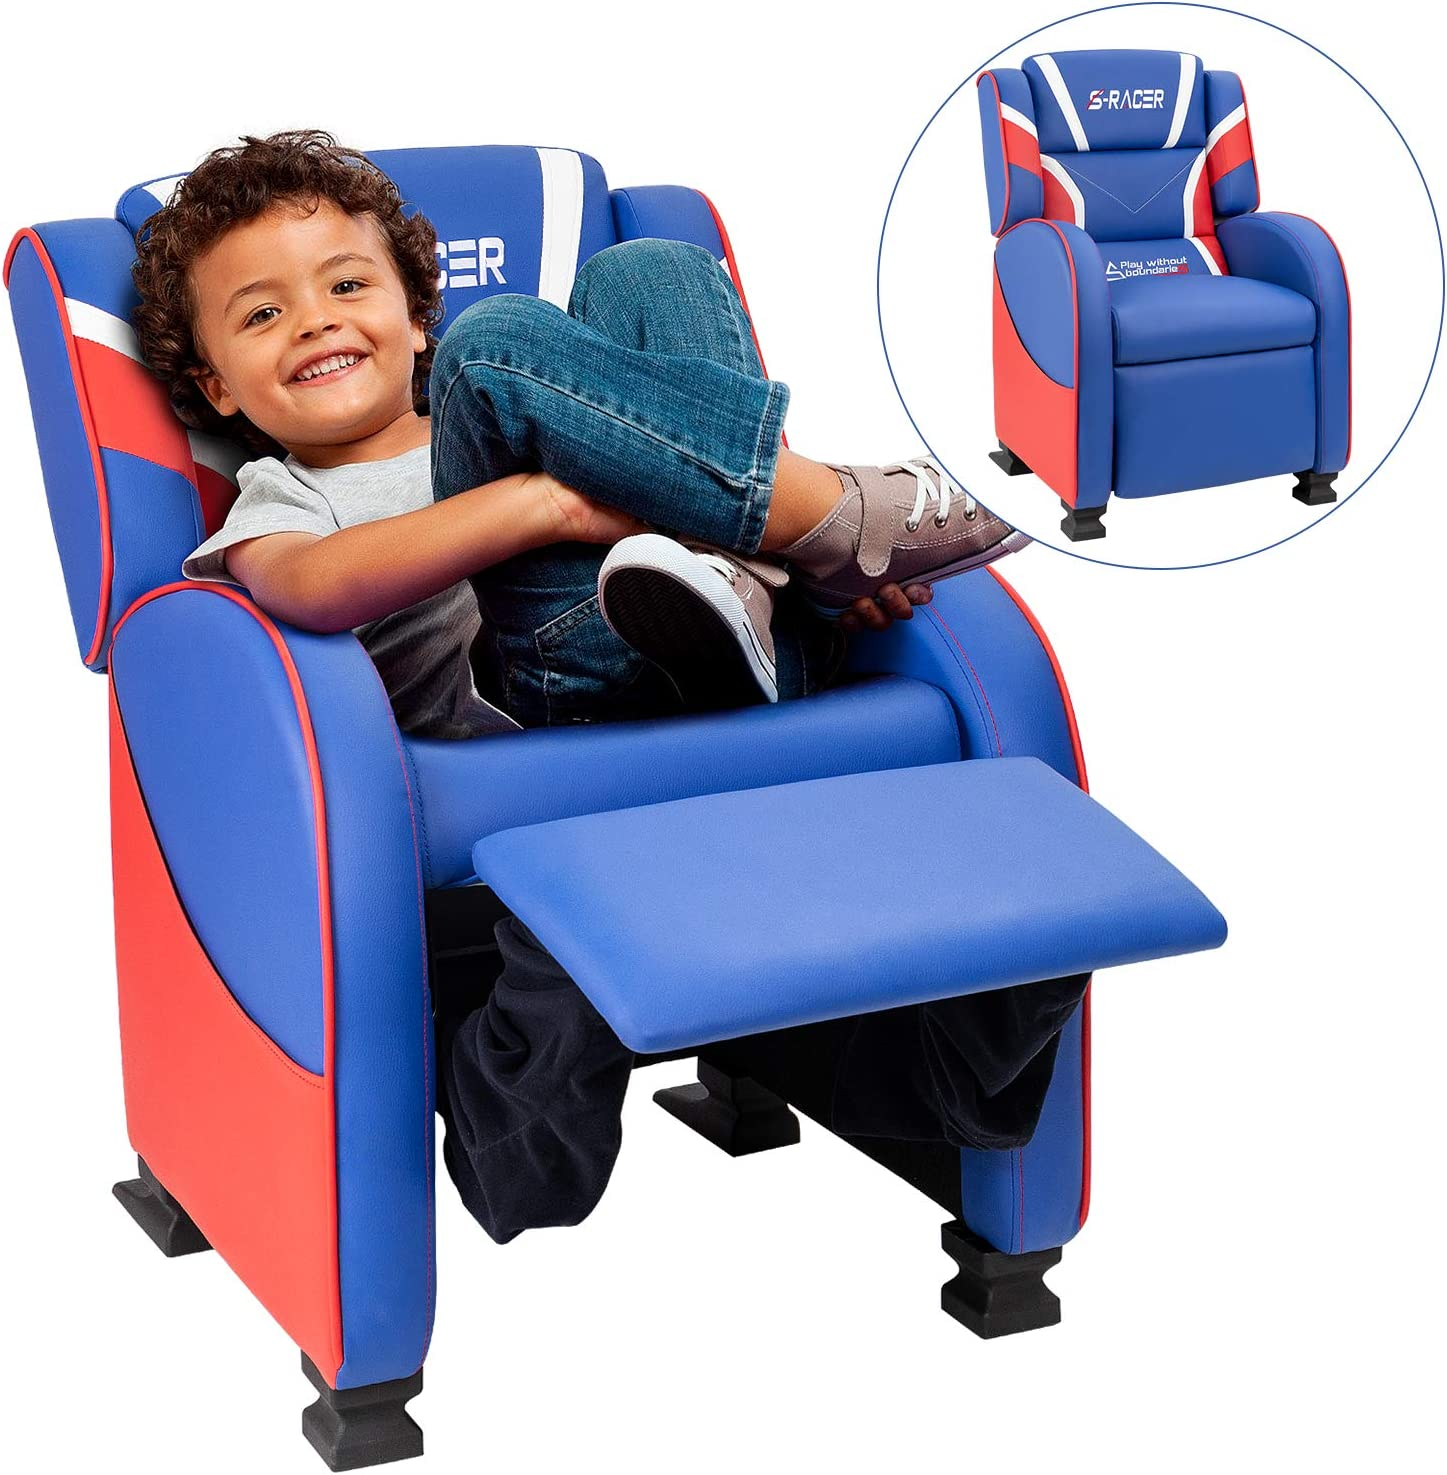 Homall Kids Recliner Chair, Lounge Furniture for Boys & Girls PU Leather Single Living Bed Room Chair Children Sofa (Blue)